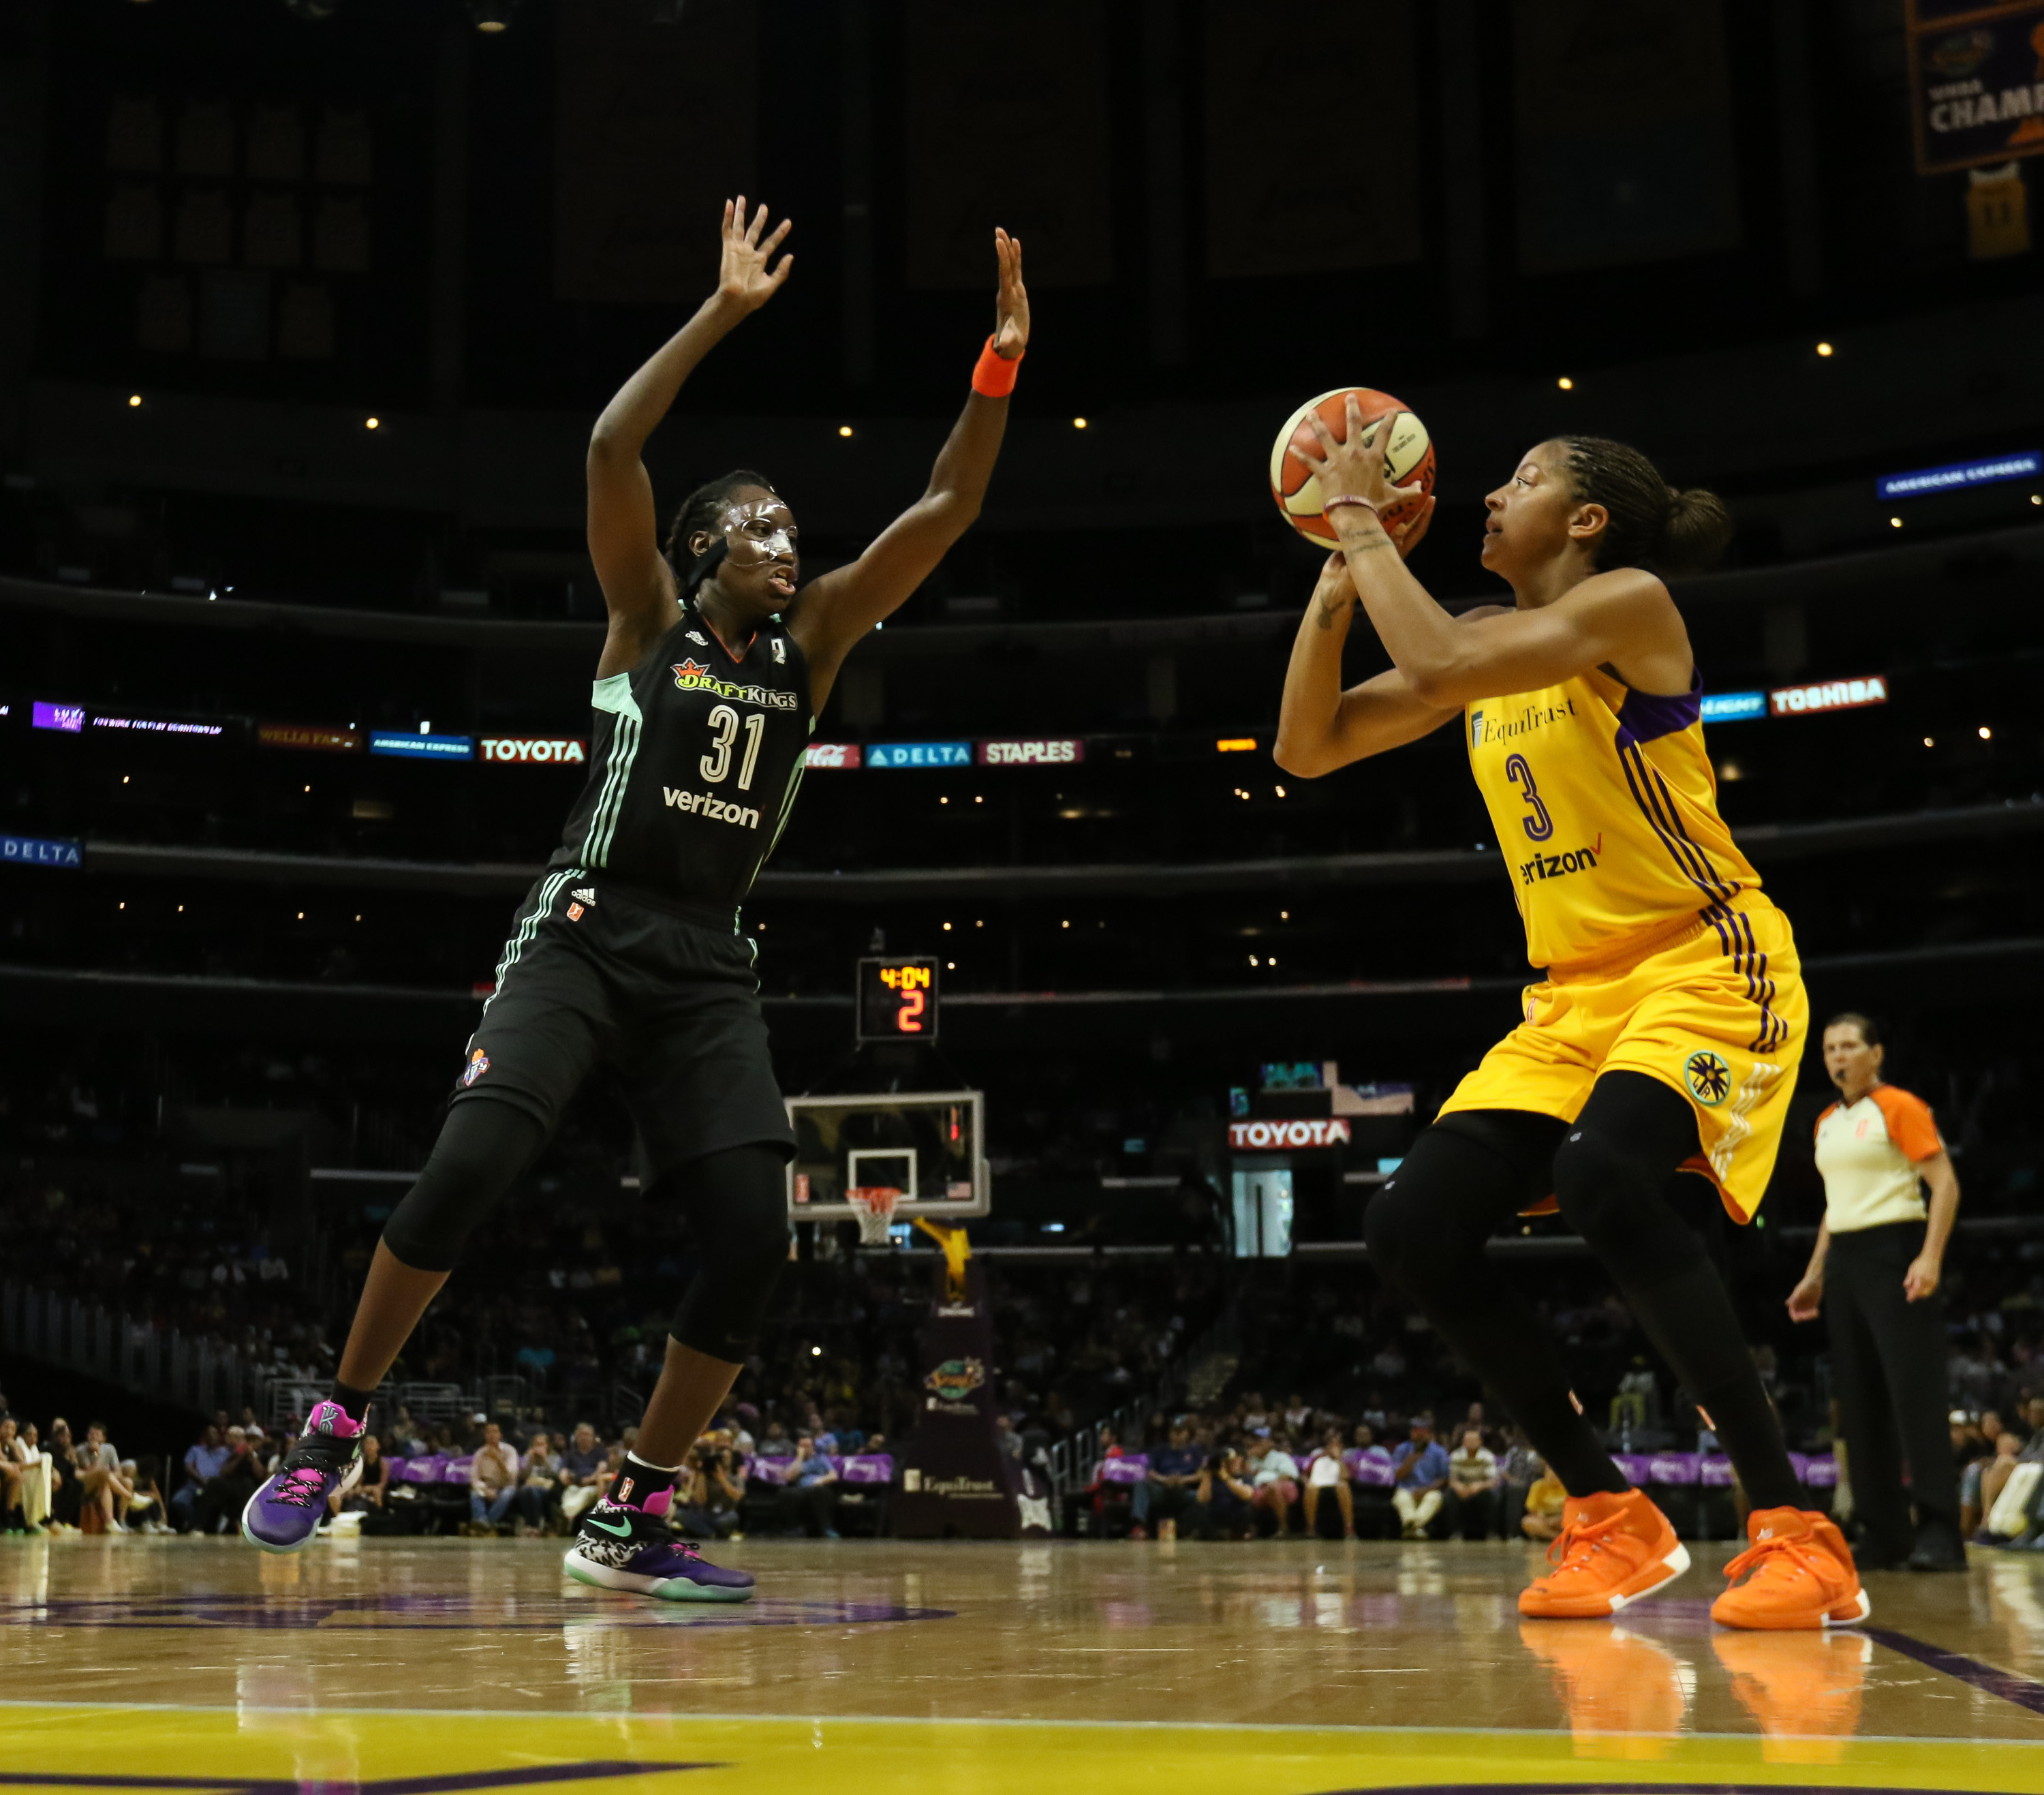 Candace Parker shooting on Tina Charles in the New York Liberty vs Los Angeles Sparks game at Staples Center in Los Angeles, Ca on July 3, 2016. (Photo by Jevone Moore/Full Image 360)